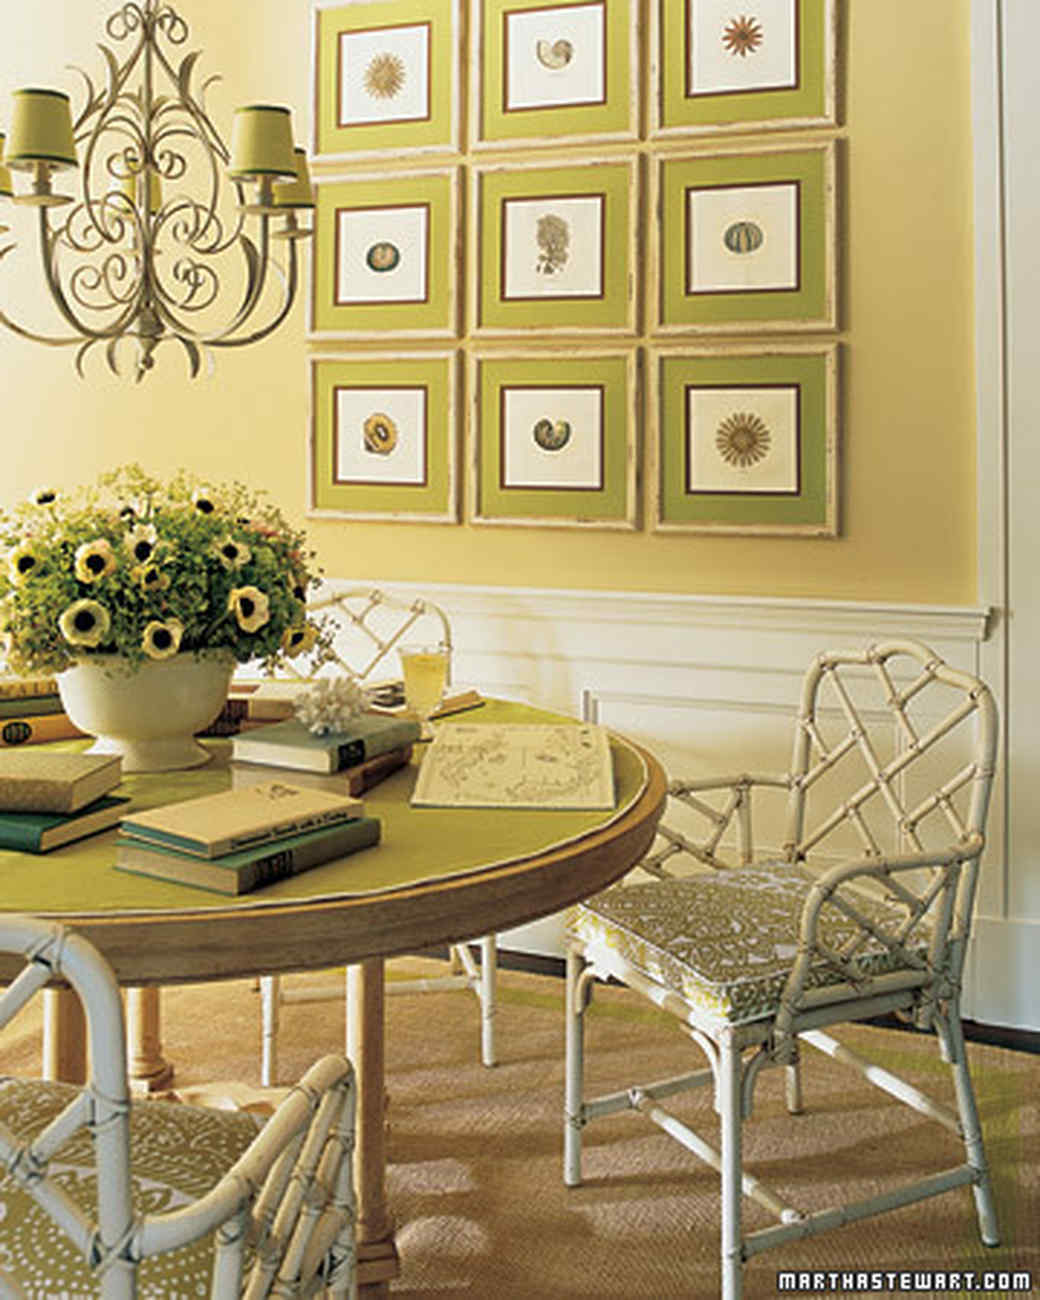 Green Room Decorating Ideas green rooms | martha stewart